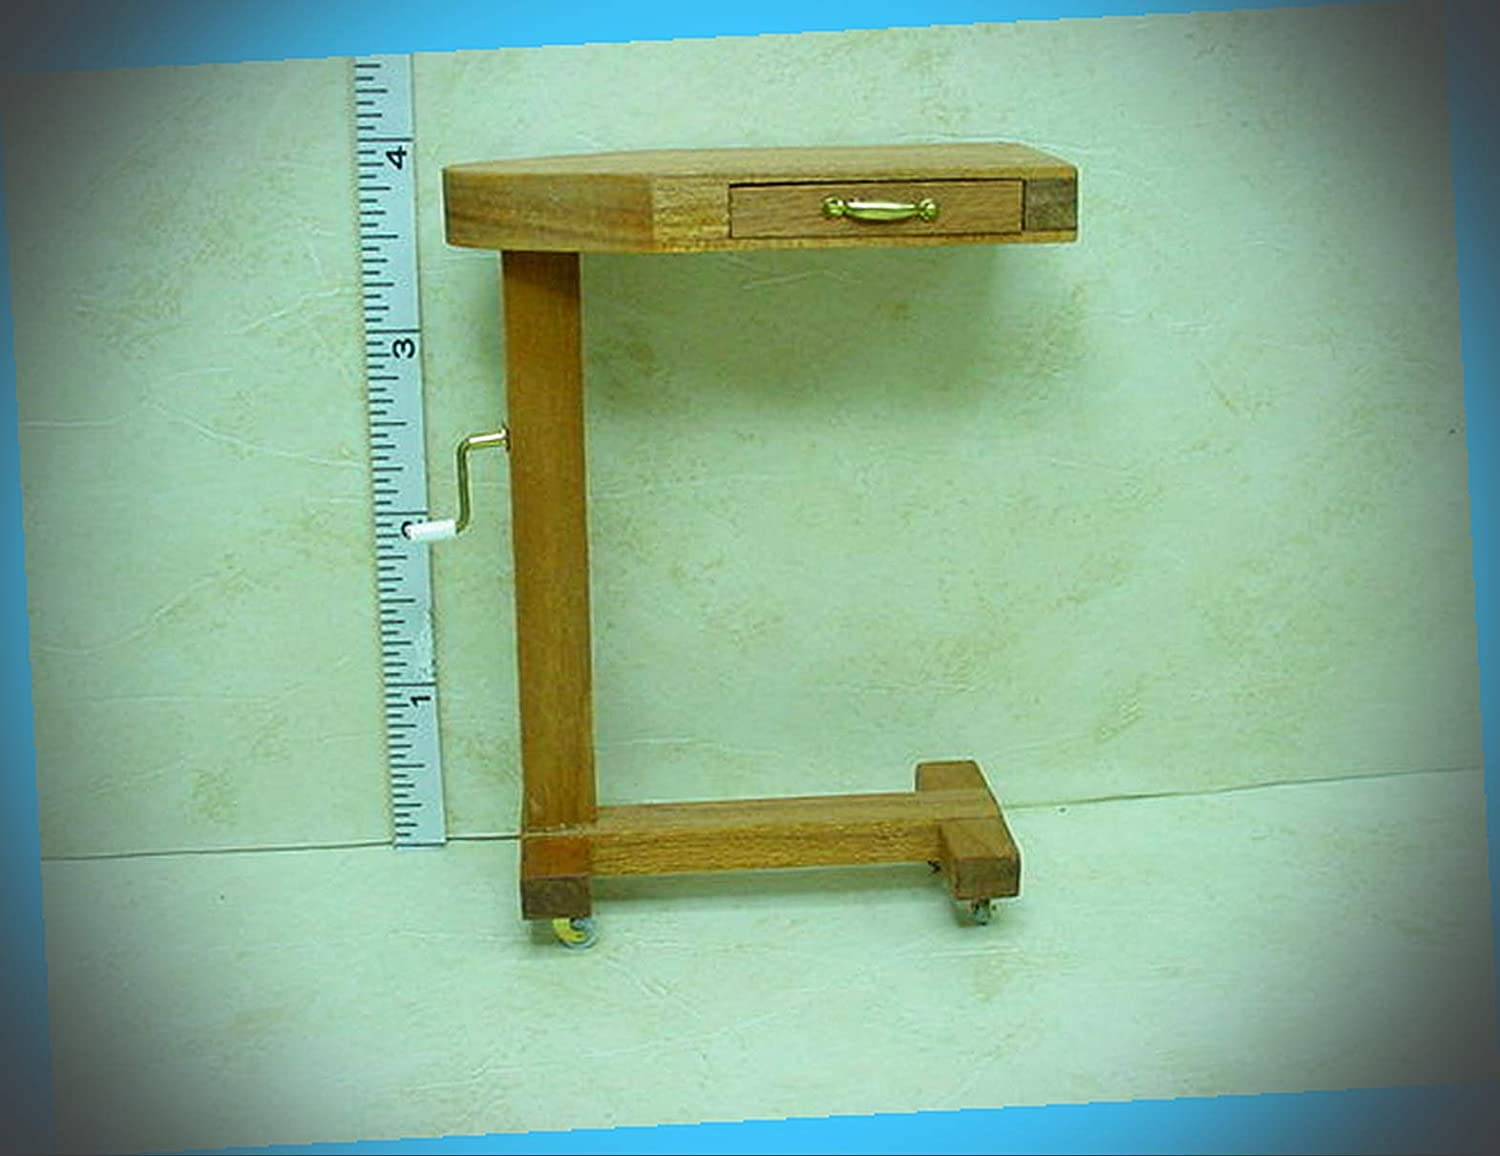 New Fairy Garden Miniature Over Bed Price reduction Ranking integrated 1st place Tray by Handcraft Casters on